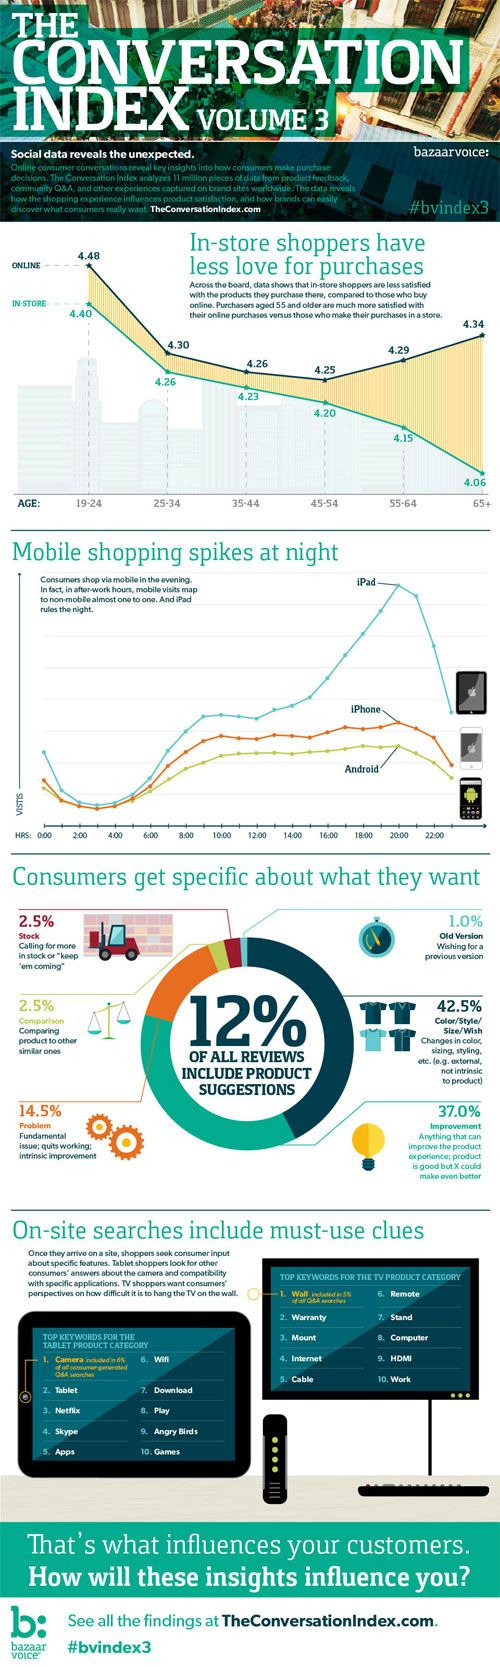 The Conversation Index Volume 3, Mar 2012: Insights from 11 million consumer conversations. Social data reveals the unexpected. See how time of day, social channels, and shopping experience impact satisfaction. #infographic #conversation #ecommerce: Social Data, Consumer Conversations, Data Visualization, Seo Jmhhacker, Ecommerce Infographics, Online Shopping